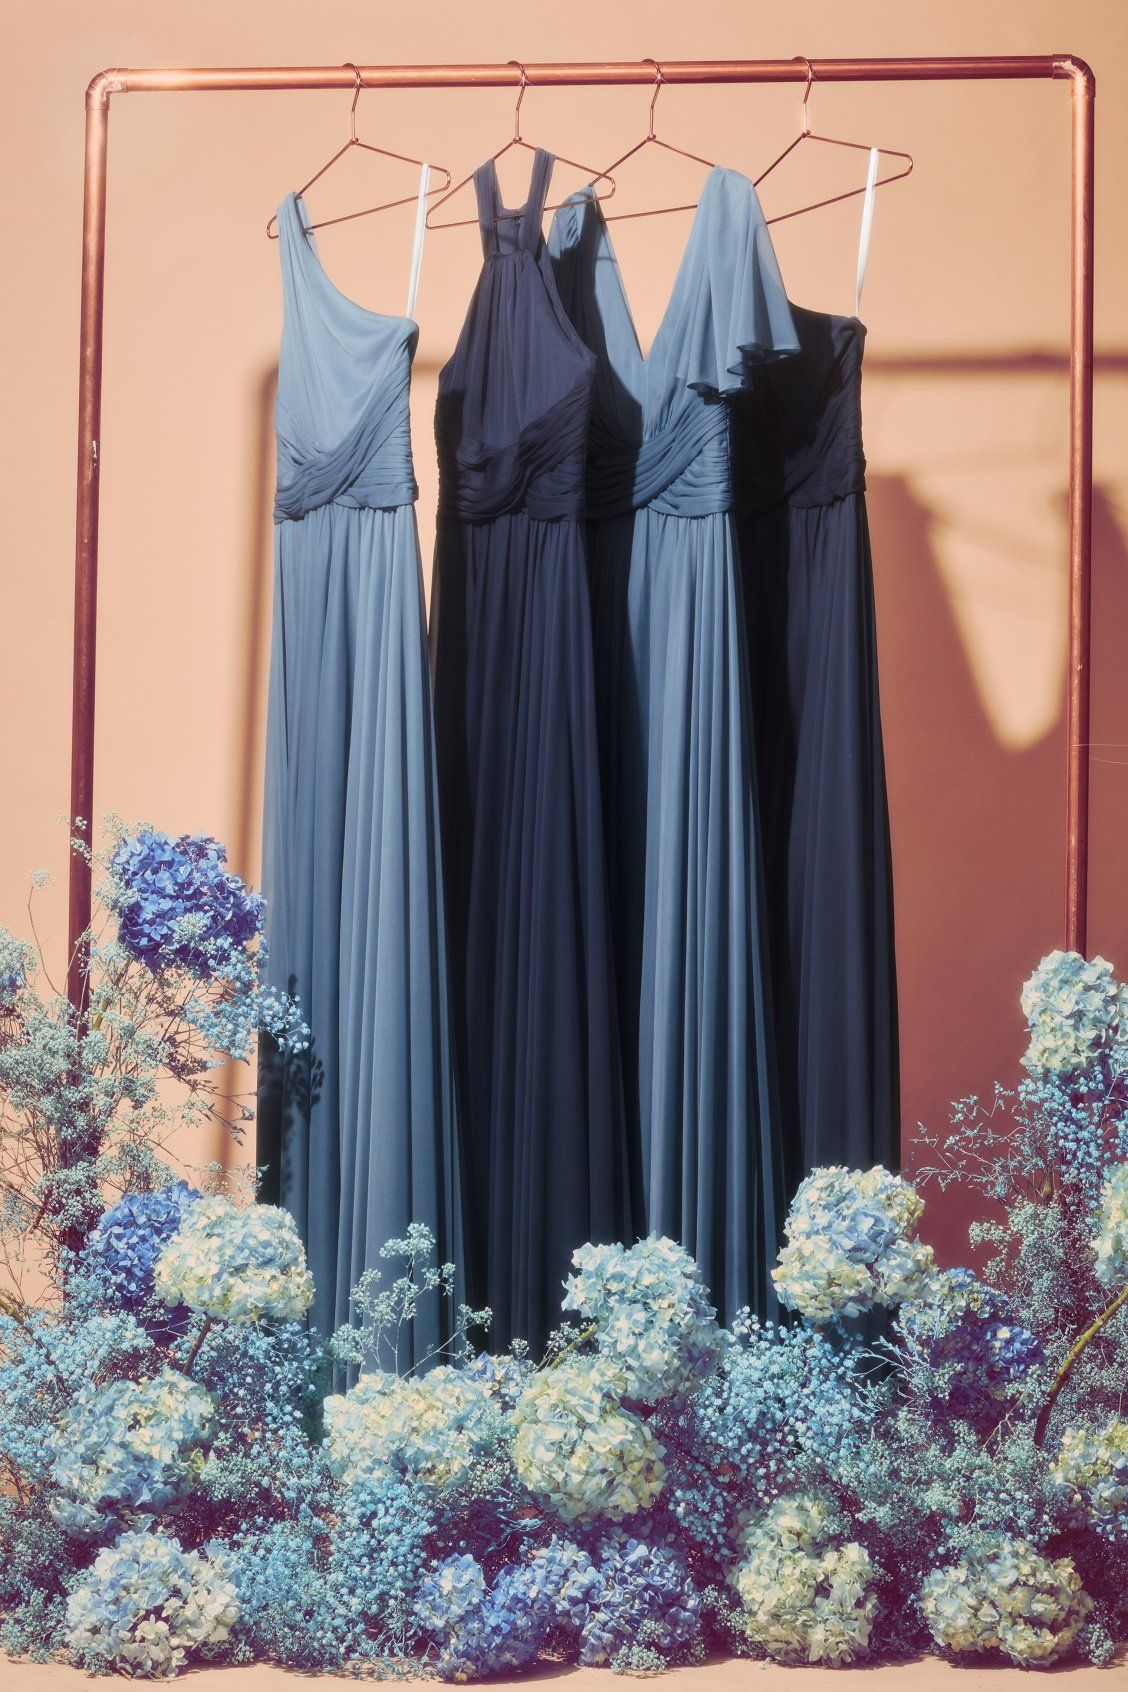 Shades Of Blue Pair Steel Blue And Marine For A Beautiful Blu Steel Blue Bridesmaid Dresses Davids Bridal Bridesmaid Dresses Blue Dark Blue Bridesmaid Dresses [ 1692 x 1128 Pixel ]